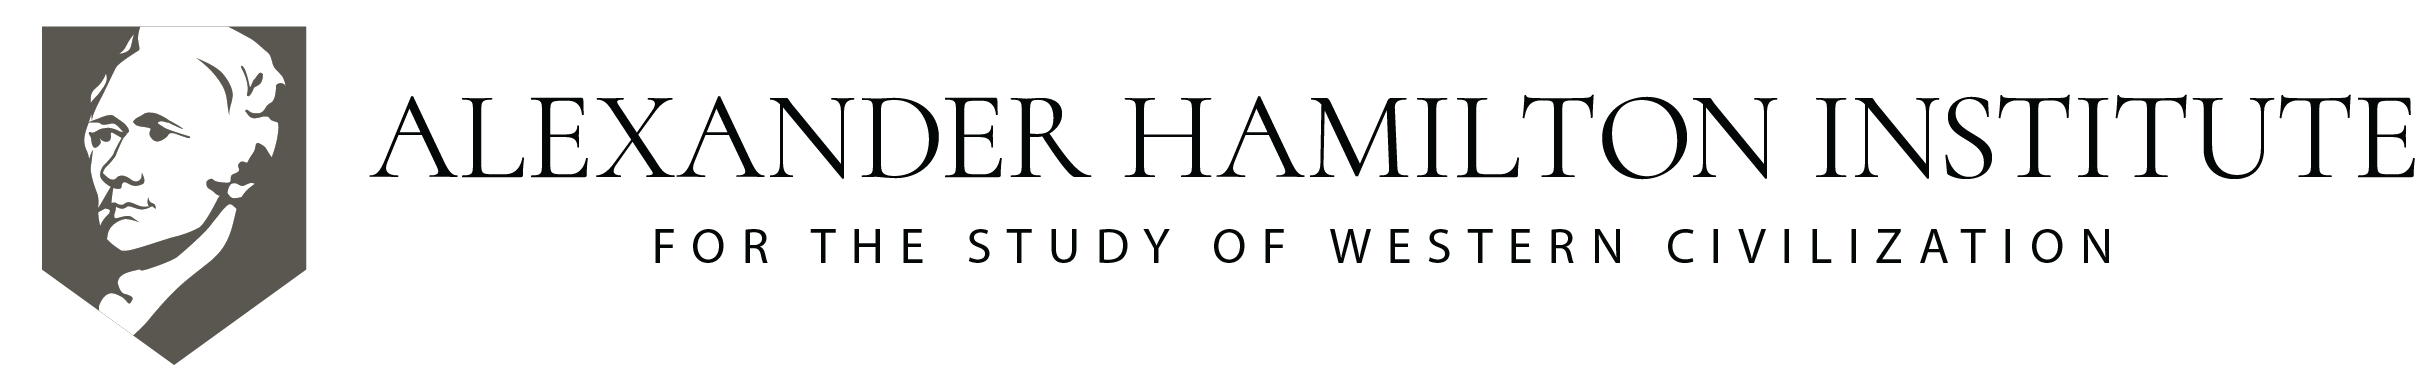 Alexander Hamilton Institute for the Study of Western Civilization Logo